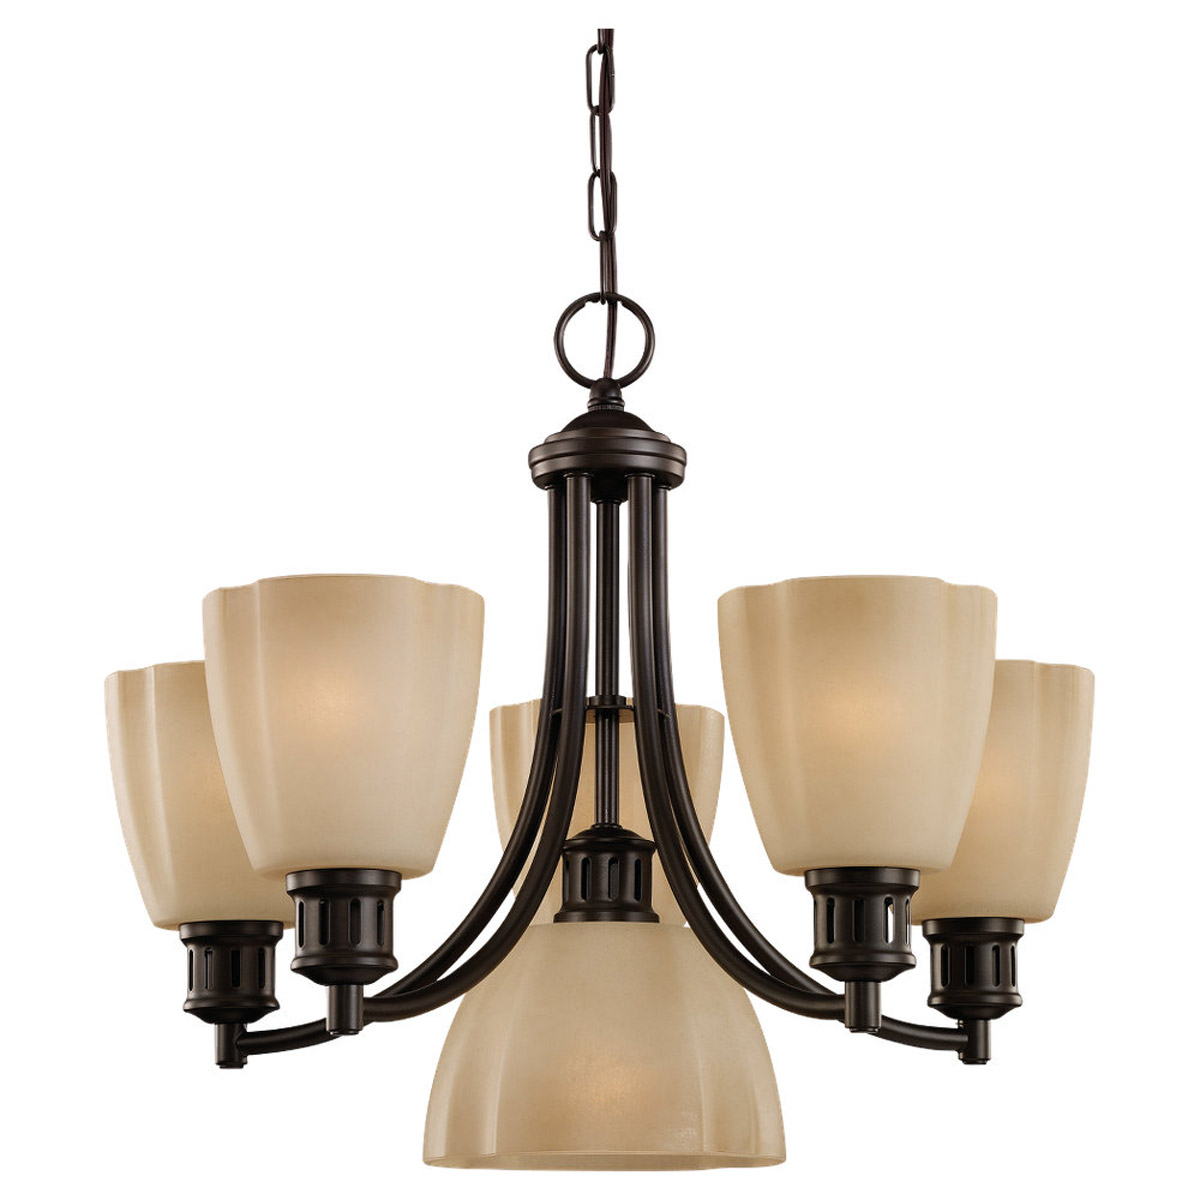 Sea Gull Lighting Century 6 Light Chandelier in Heirloom Bronze 31476-782 photo